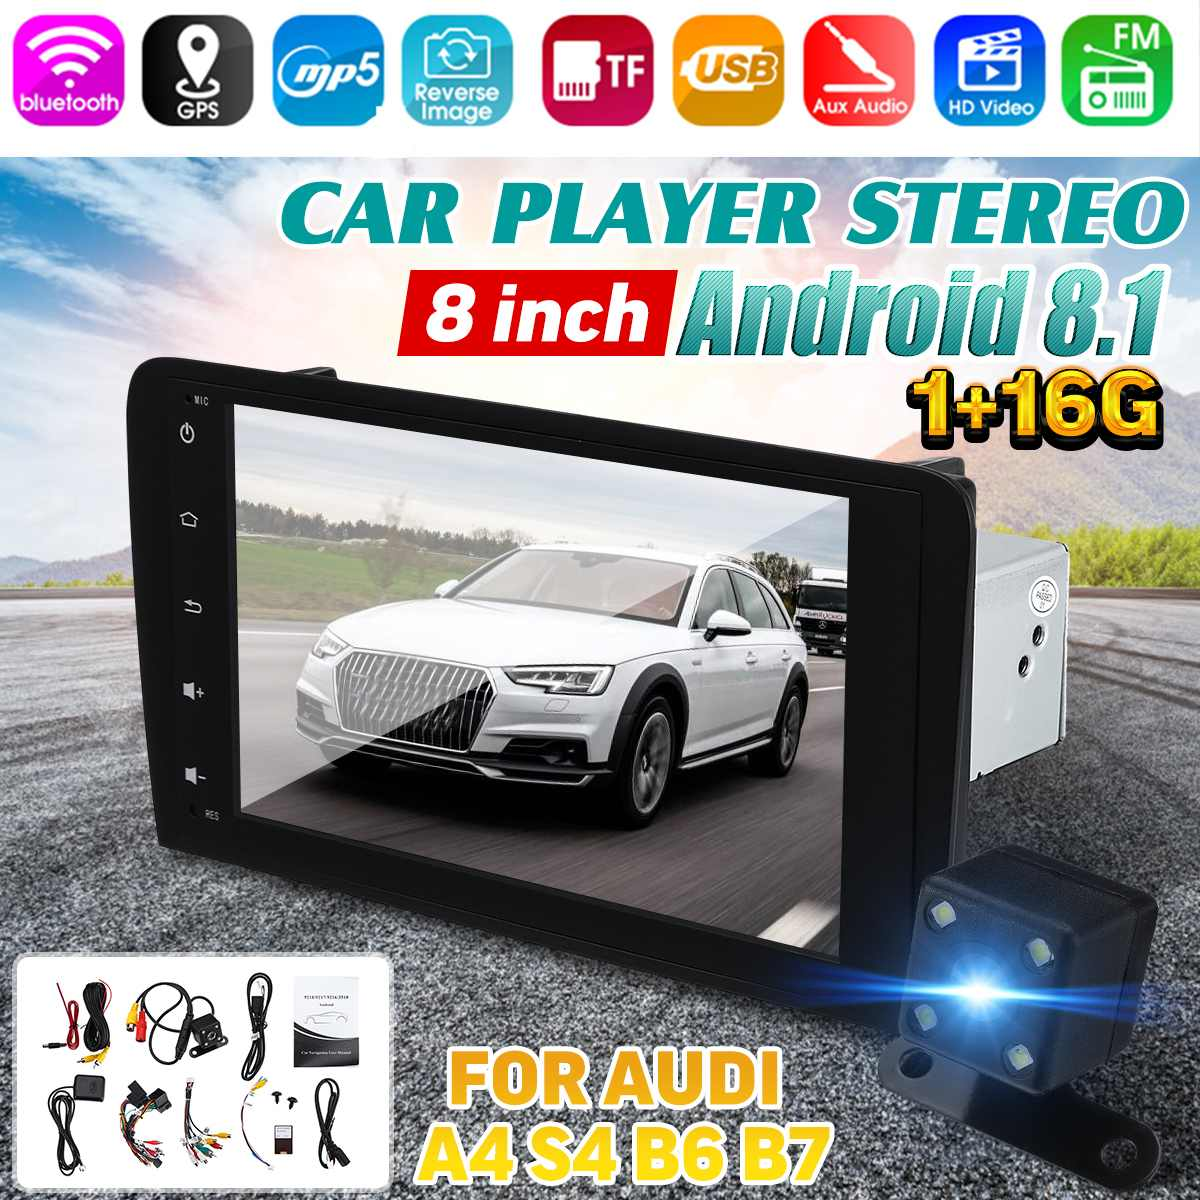 8'' Android 8.1 Car <font><b>Multimedia</b></font> Player GPS Stereo Radio Player WIFI bluetooth Rear View Camera 16G GPS FM for <font><b>Audi</b></font> <font><b>A4</b></font> S4 <font><b>B6</b></font> B7 image